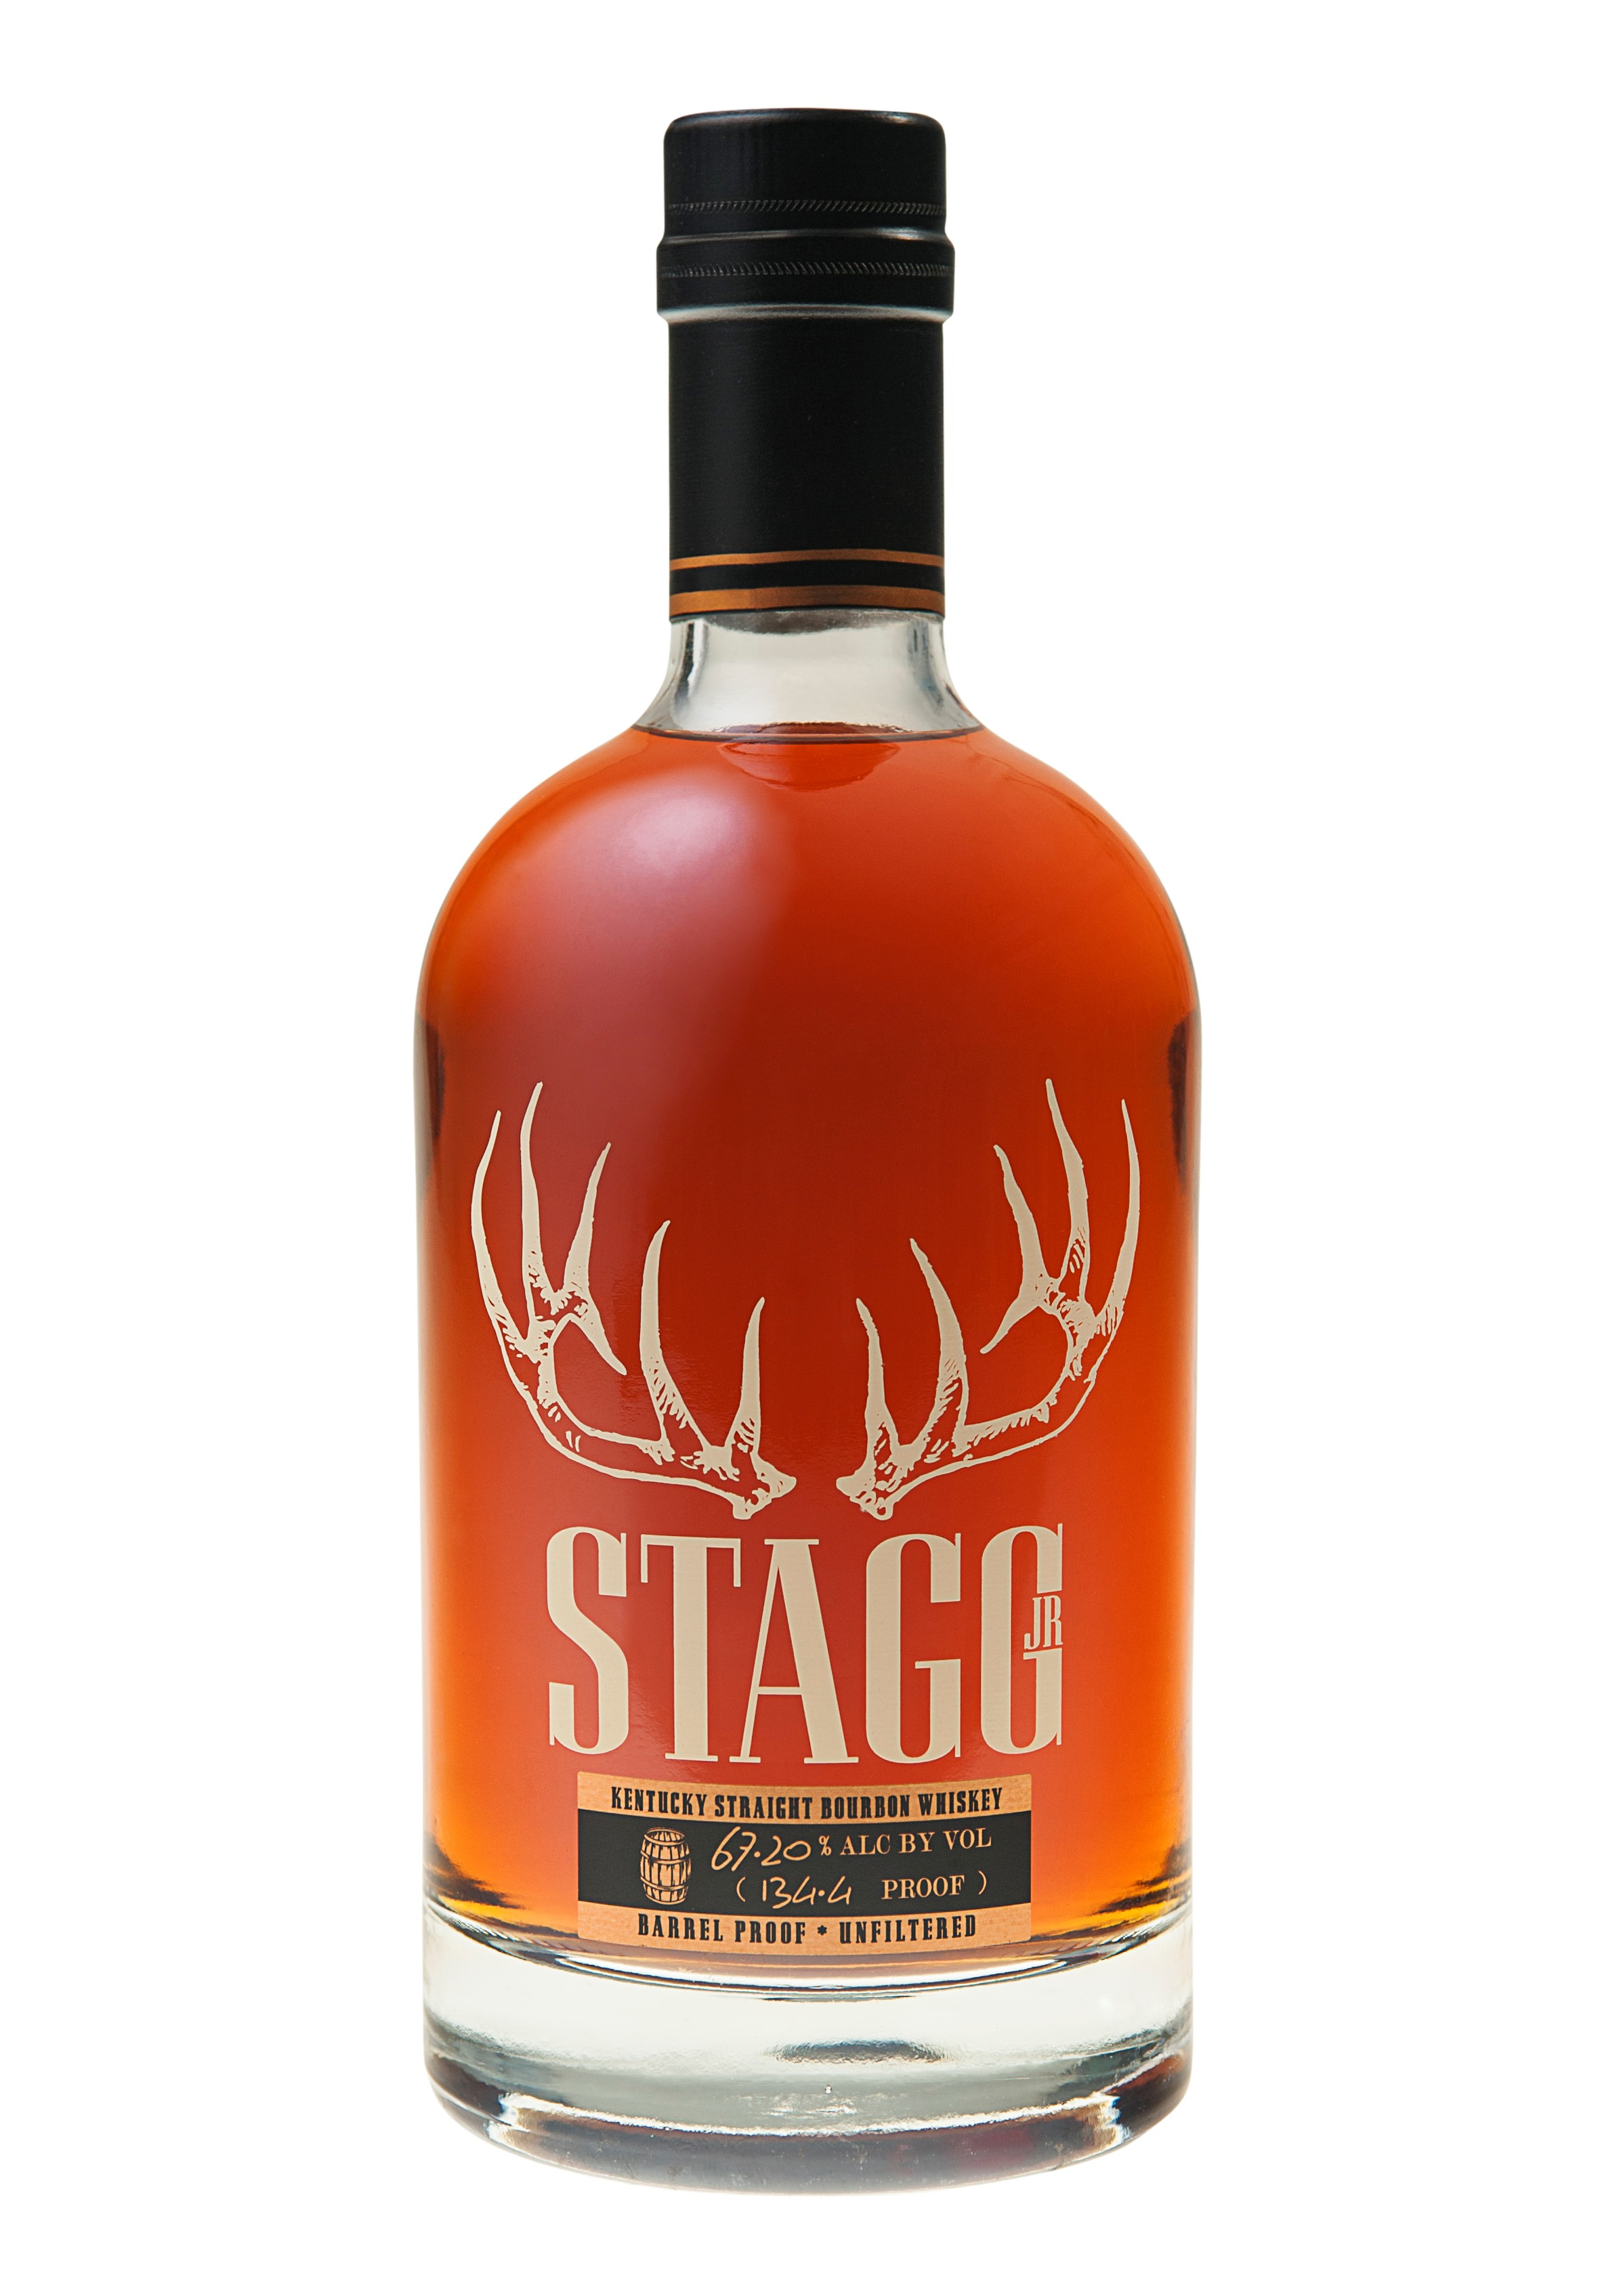 Stagg Jr Kentucky Straight Bourbon – Review